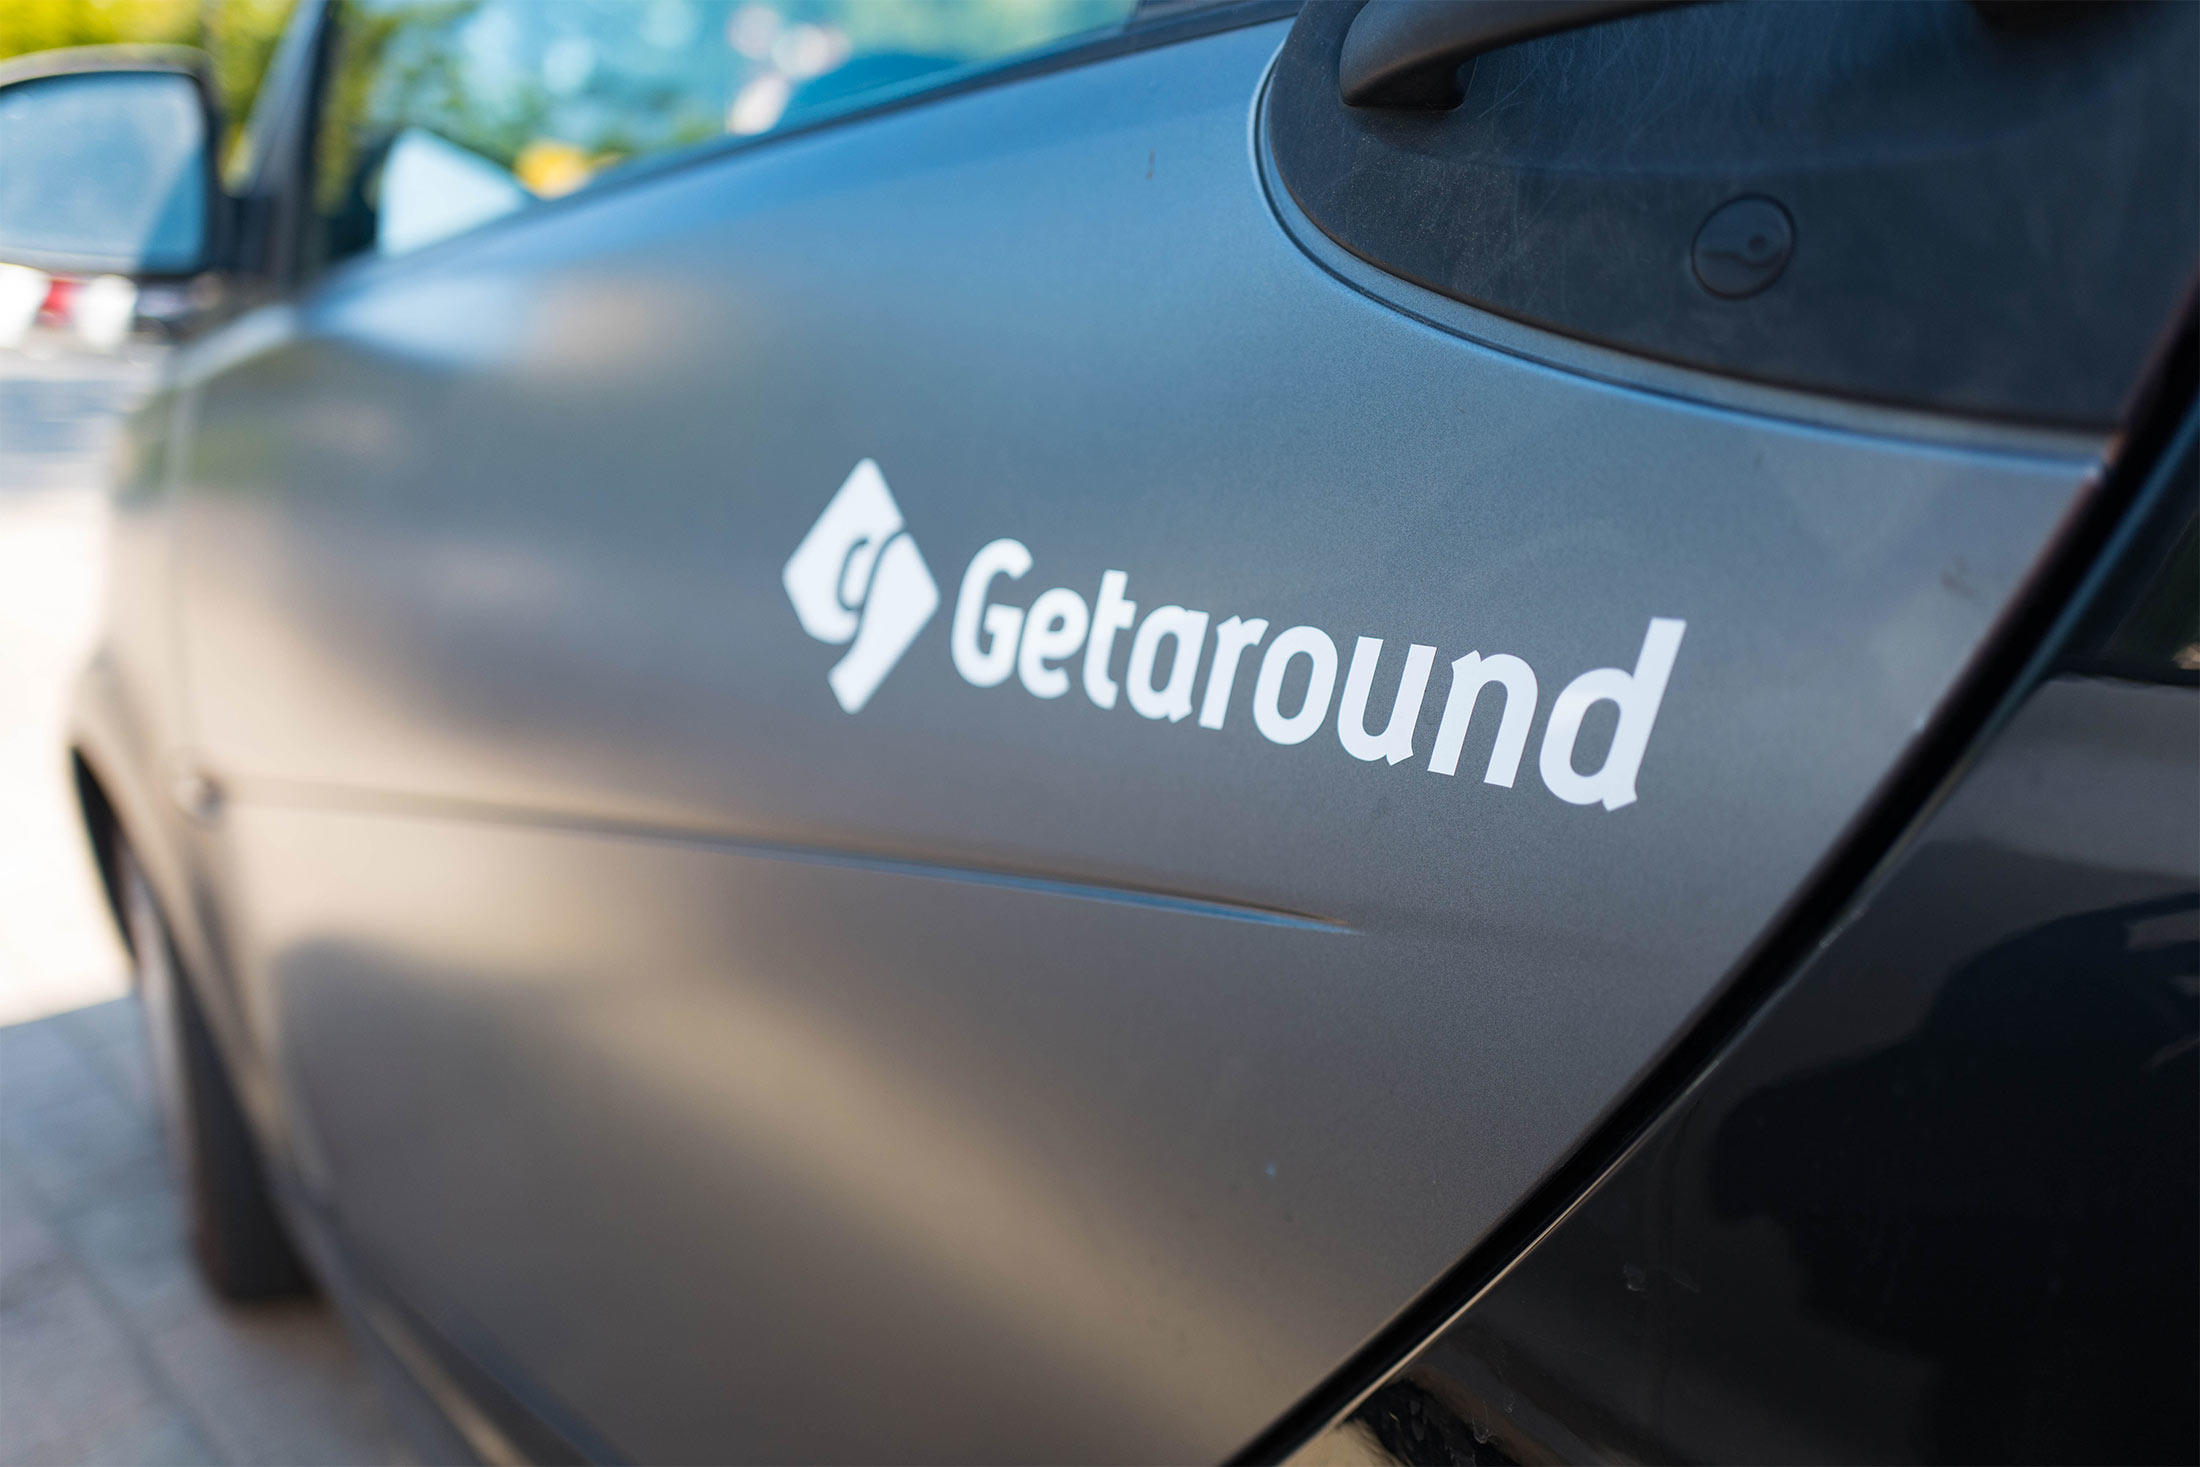 getaround vehicle with logo